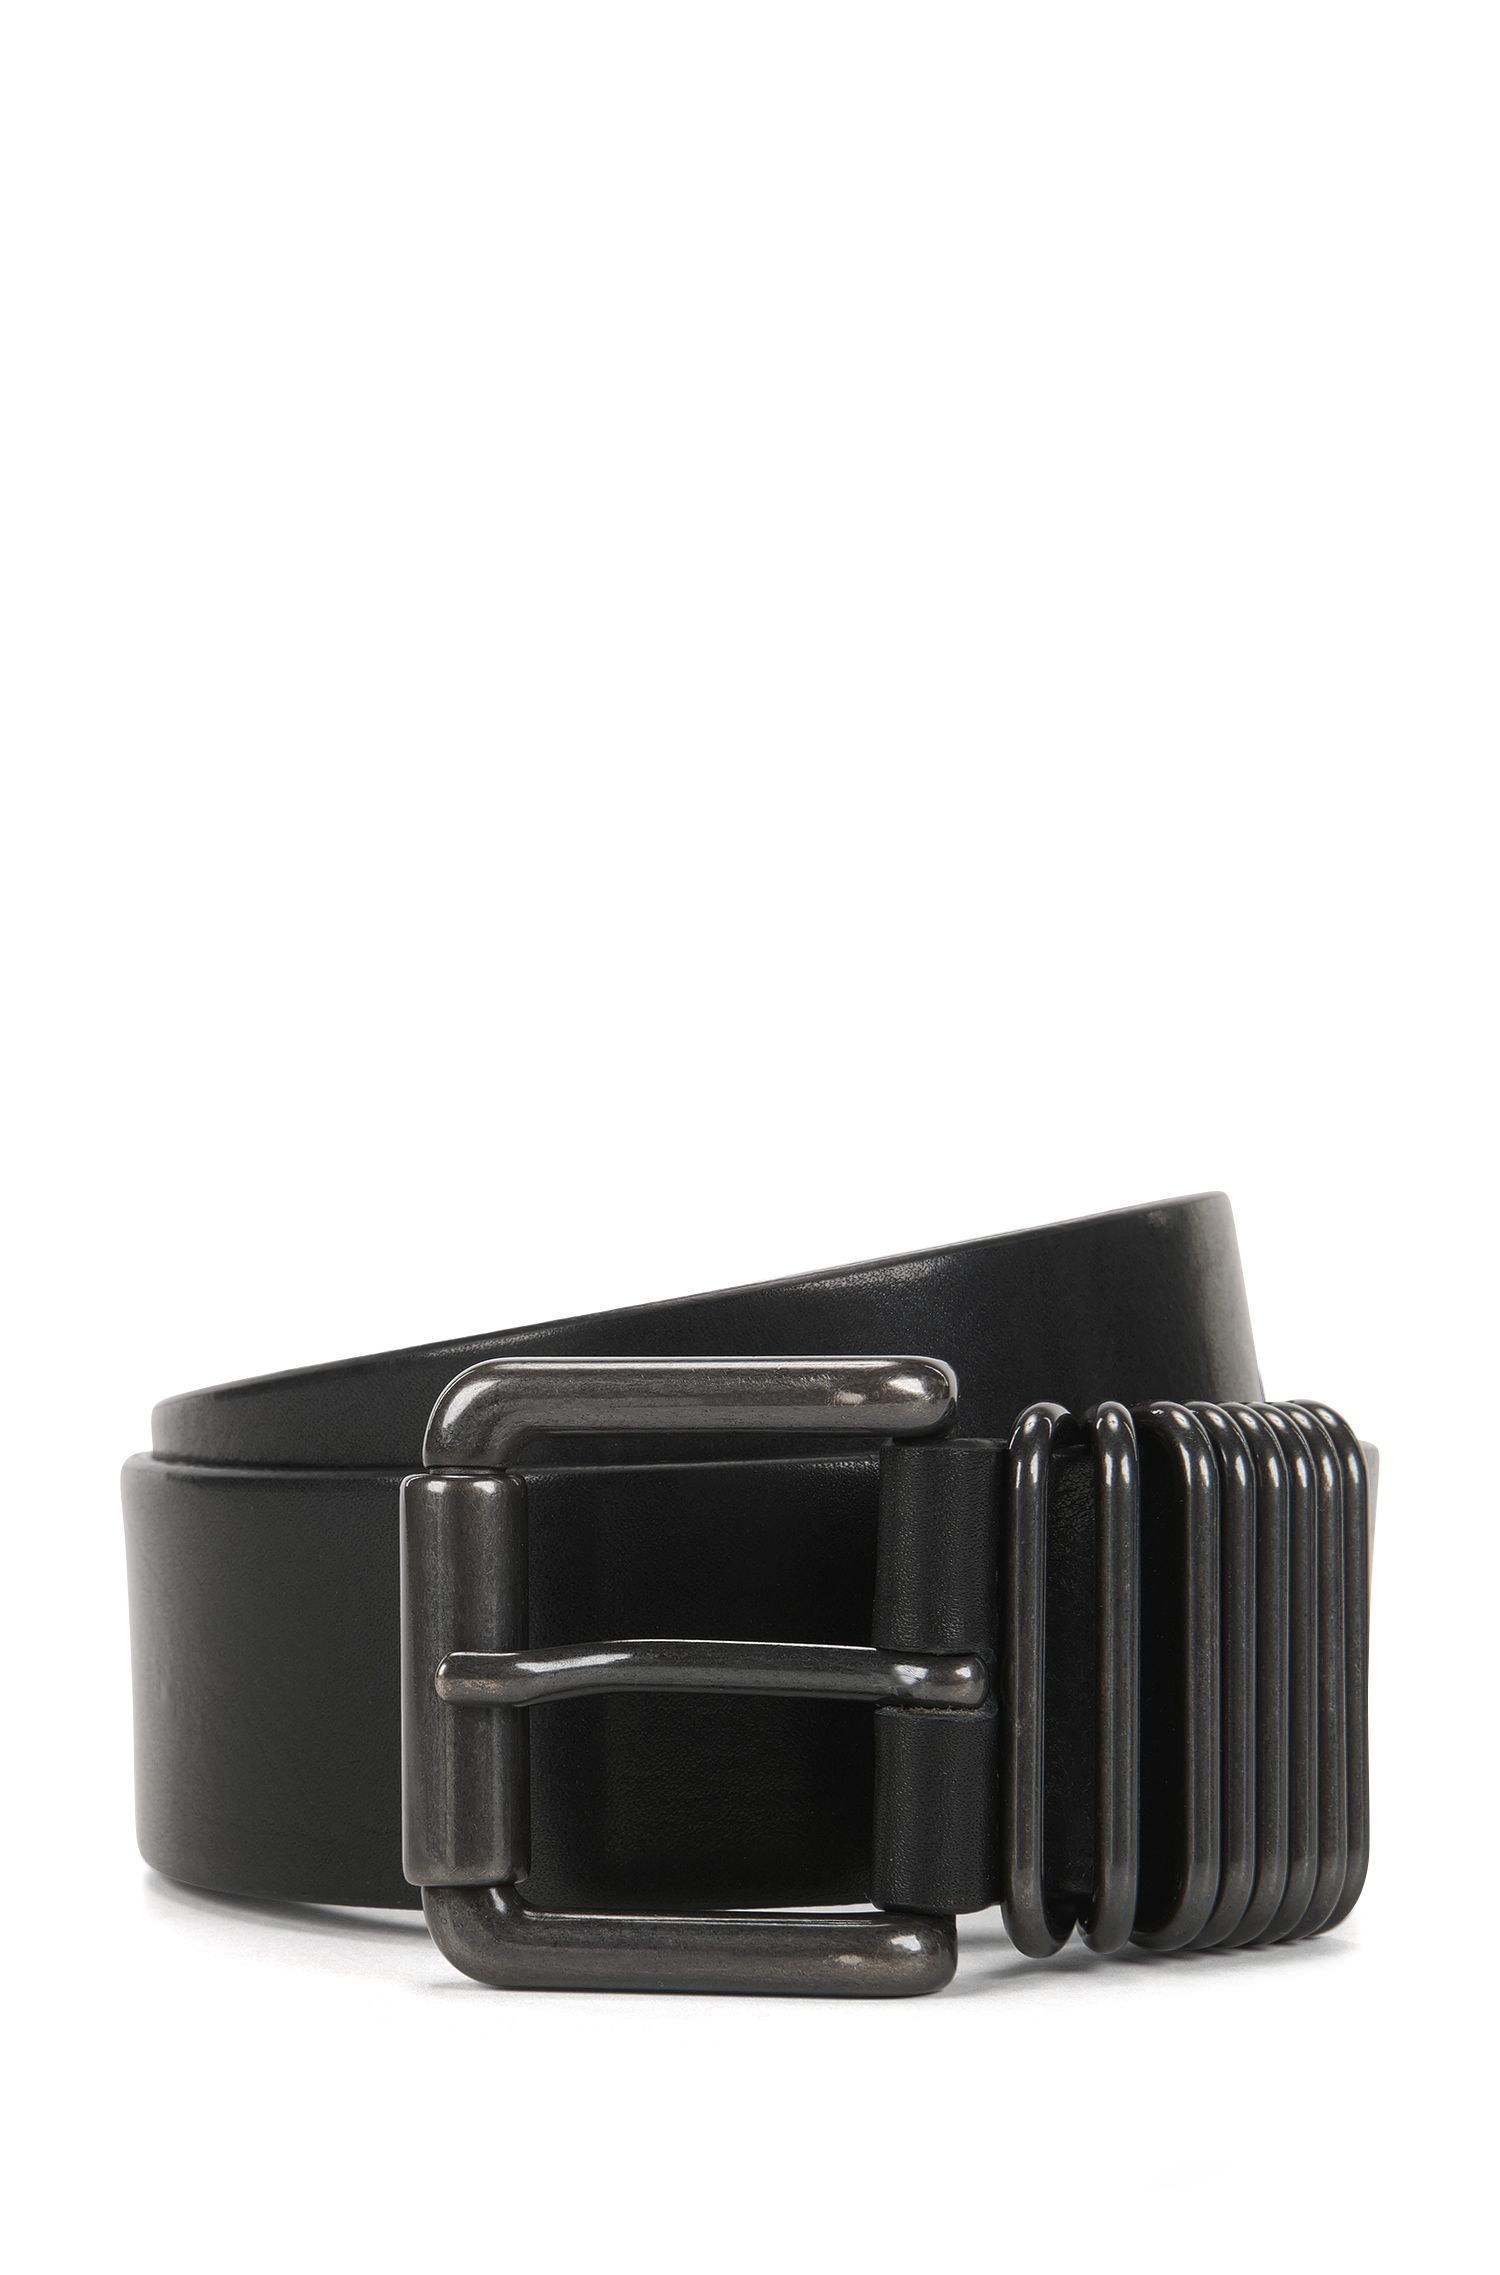 Leather belt with gunmetal keeper loops